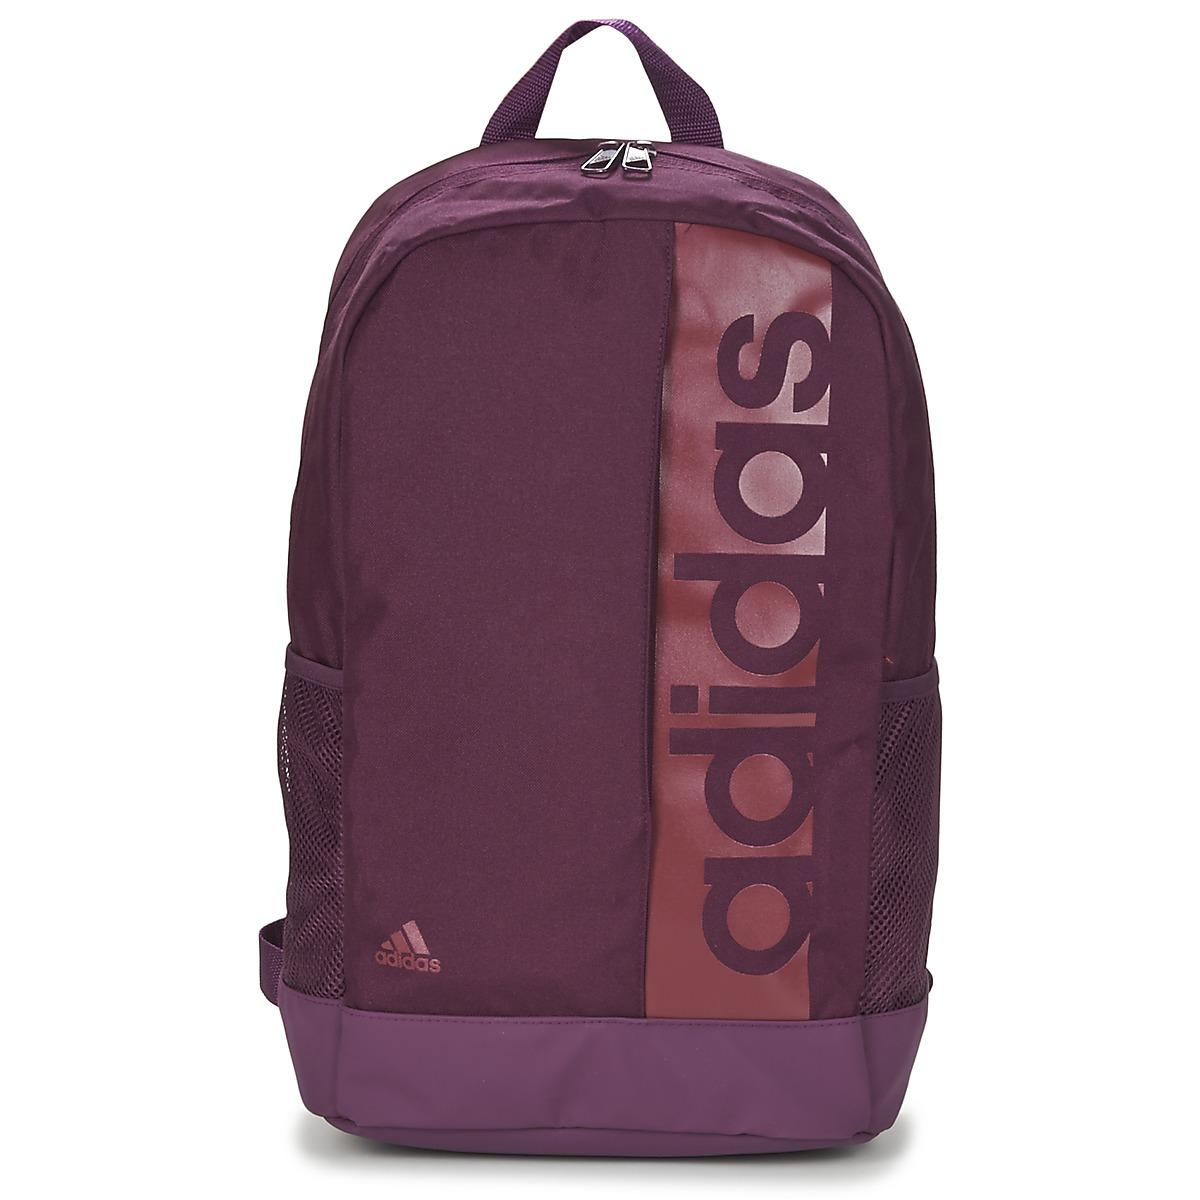 315b0c0a10 Adidas Backpack Pink And Purple- Fenix Toulouse Handball